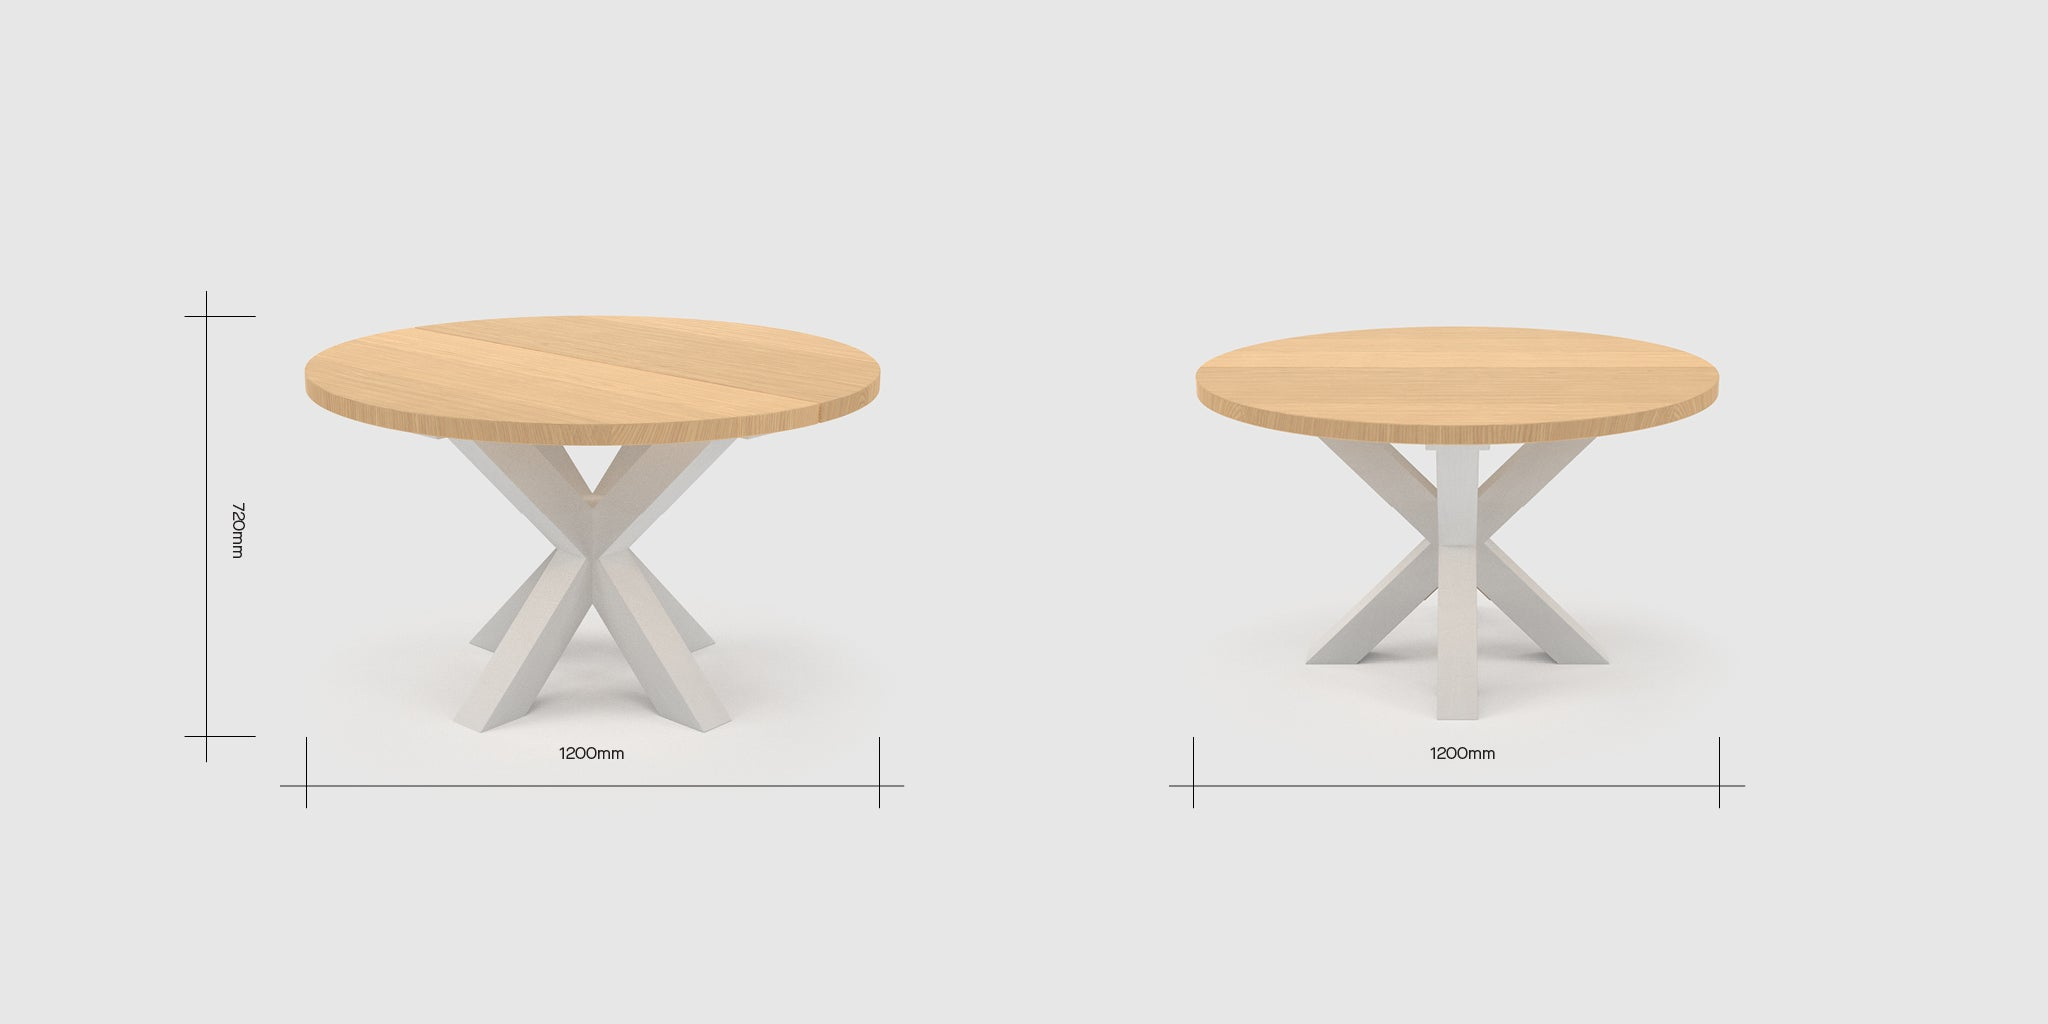 Patonga 4 Person Round Table Dimensions